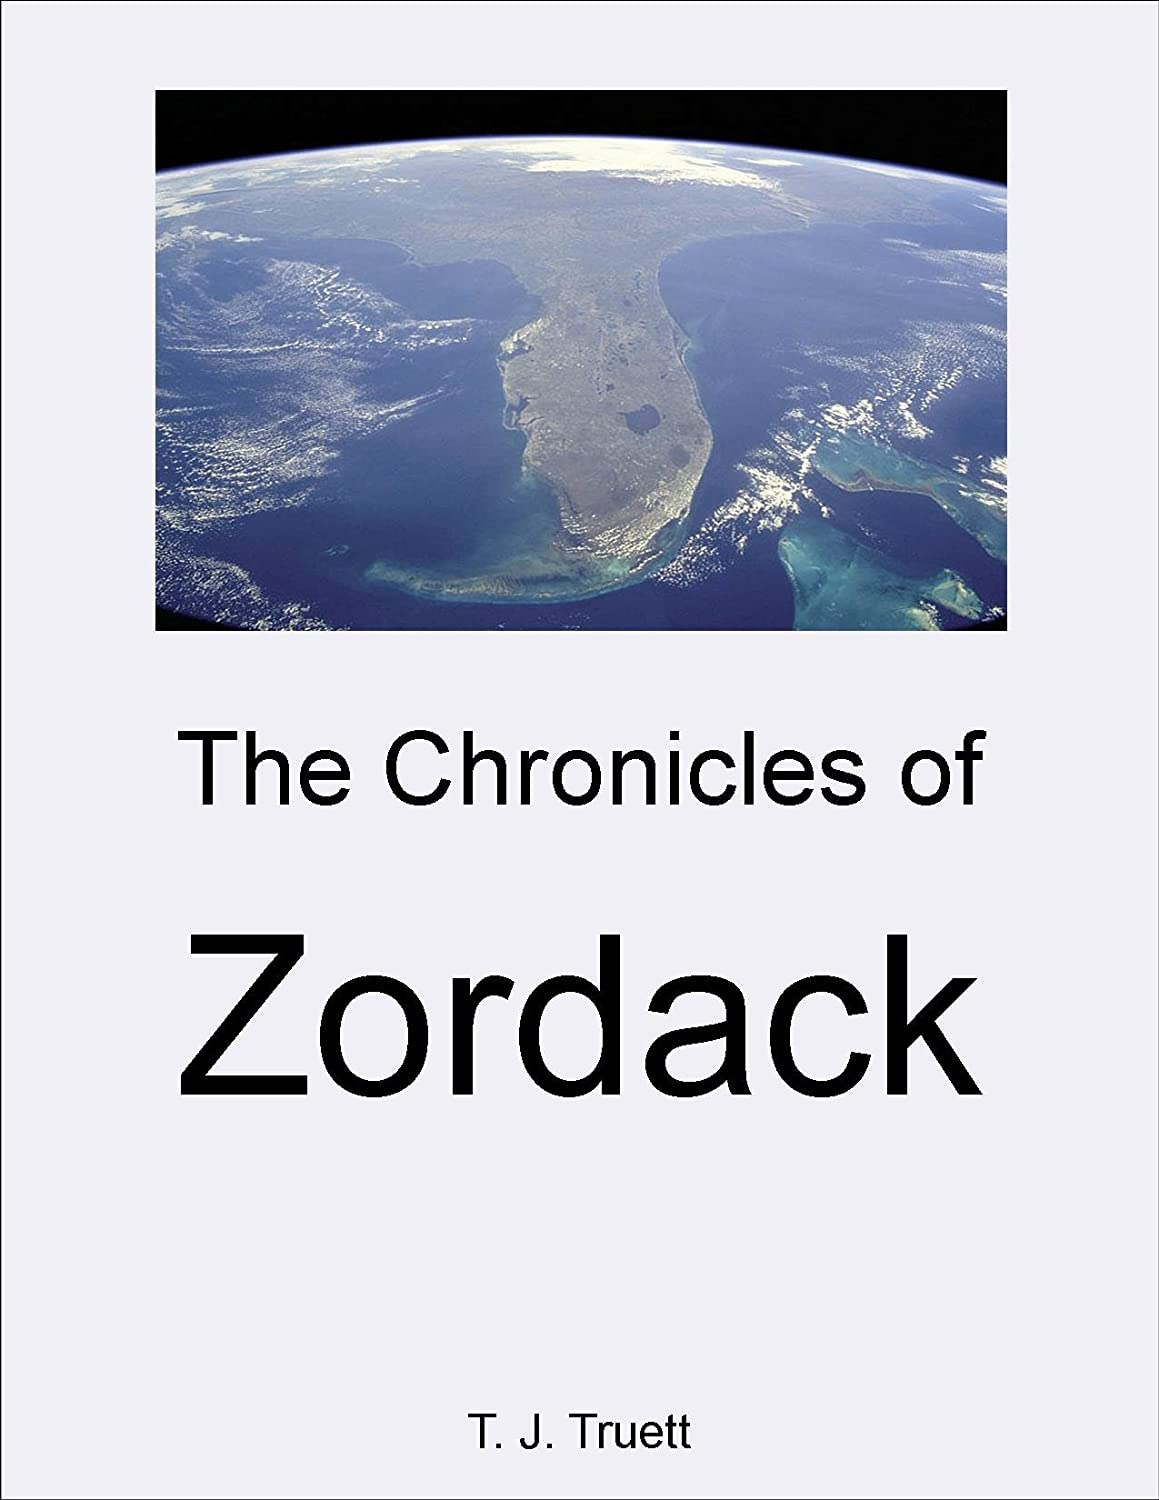 The Chronicles of Zordack